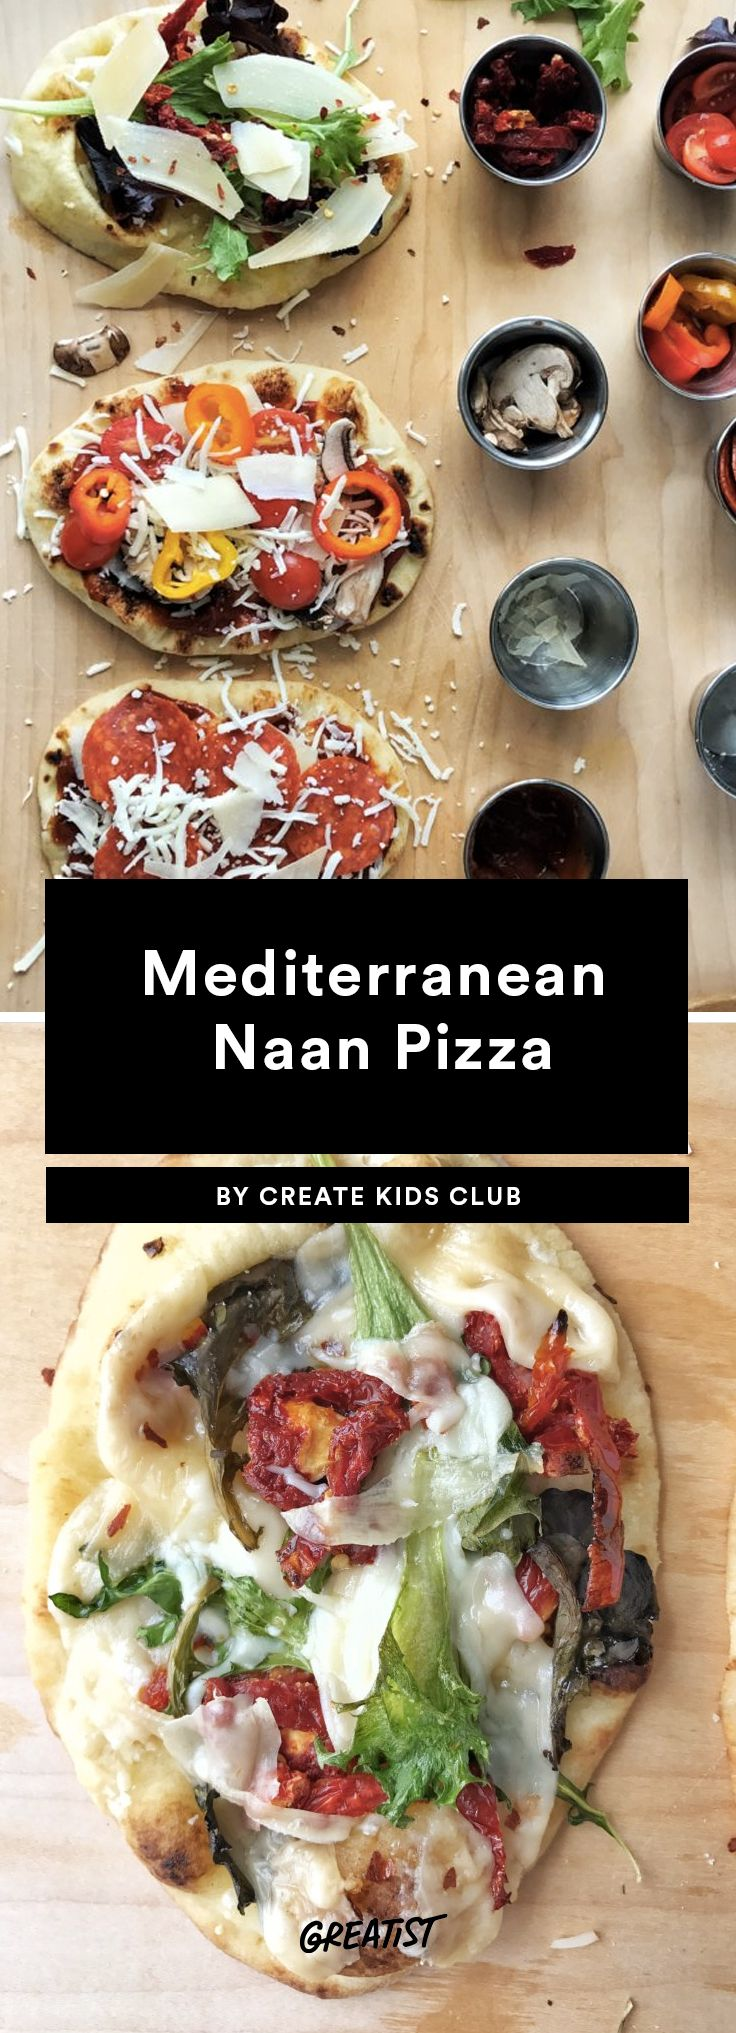 9 naan pizza recipes that are as easy as pie naan pizza. Black Bedroom Furniture Sets. Home Design Ideas